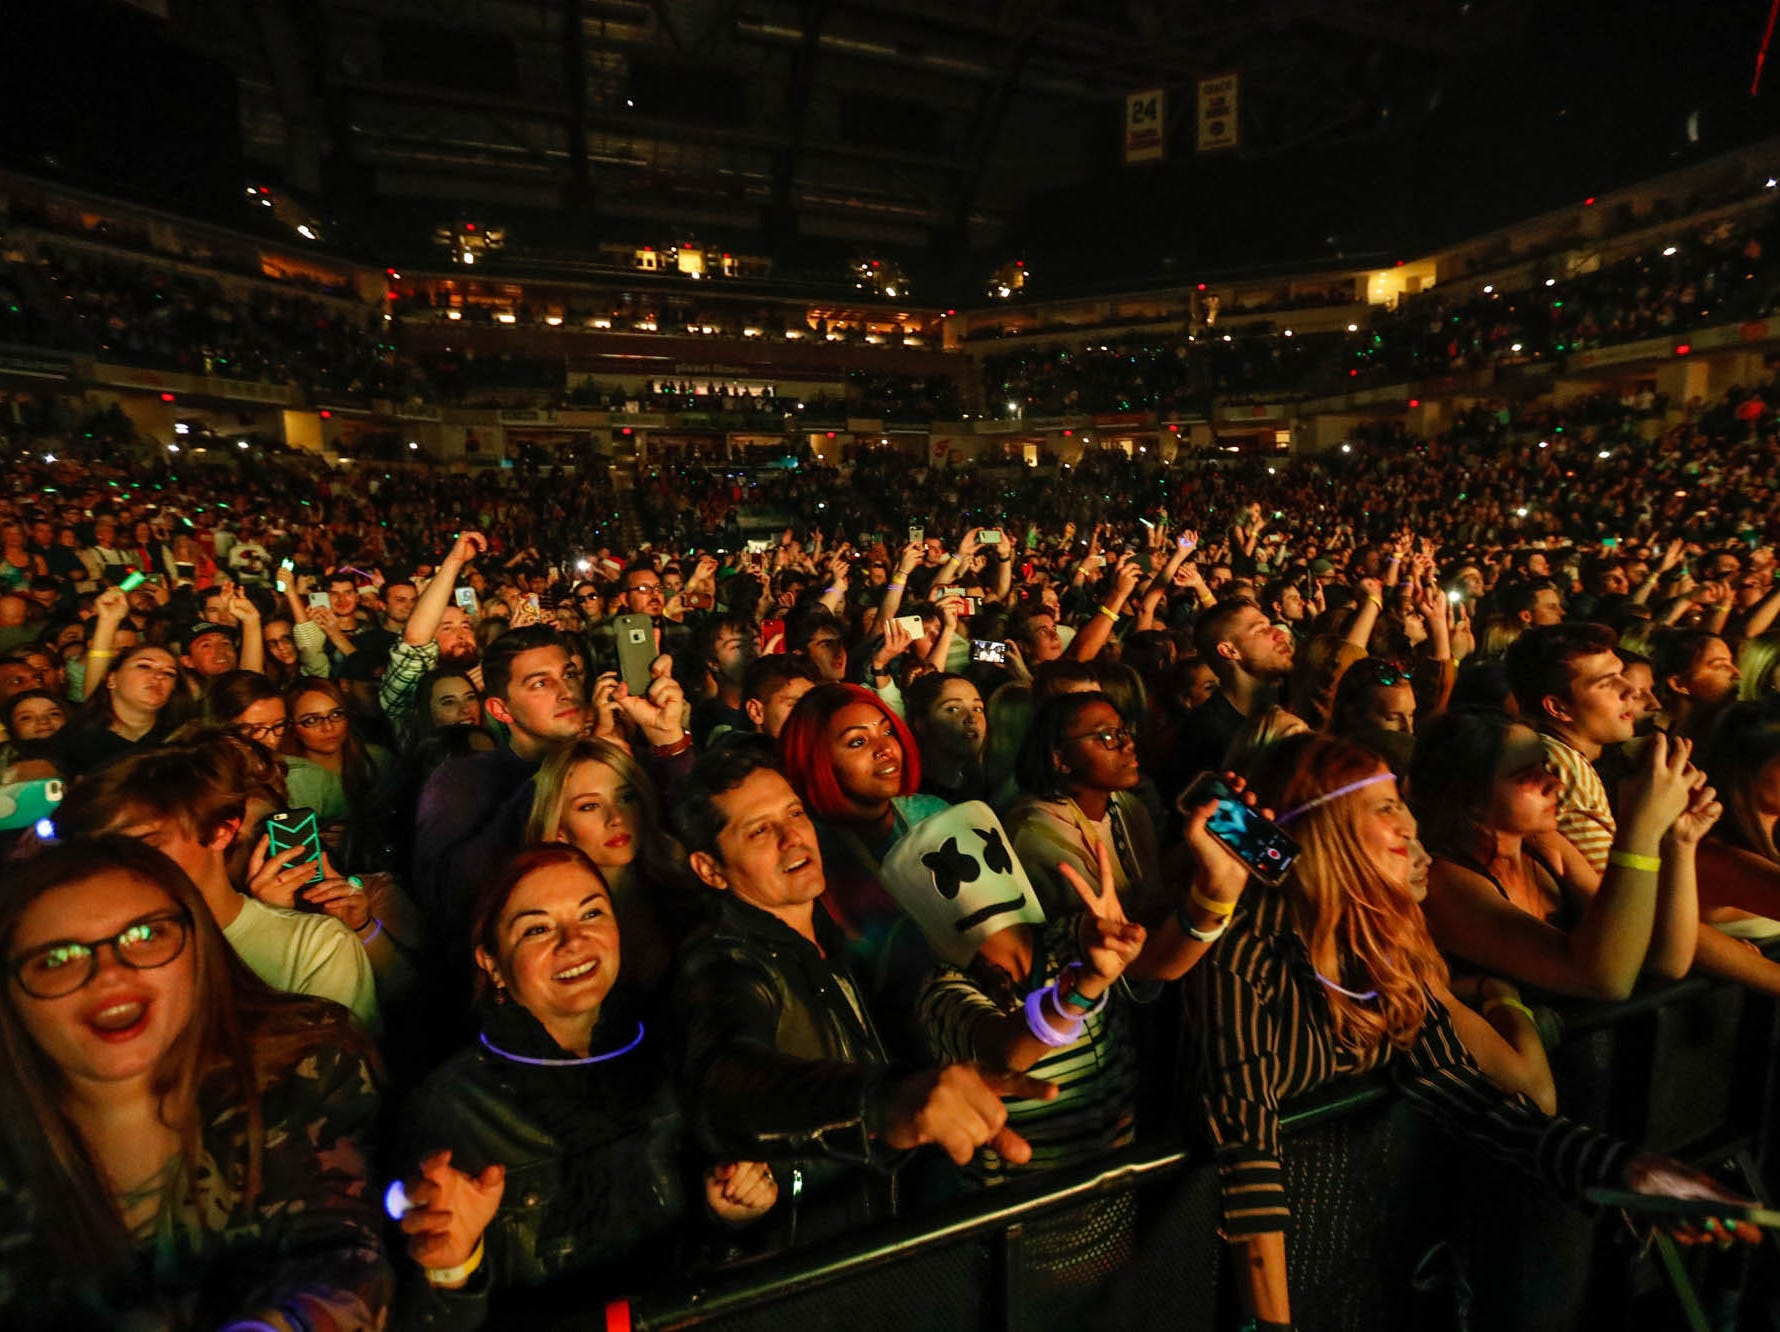 Fans rock out to music by the Chainsmokers, Marshmello, and  Bebe Rexha during the 2018 Jingle Jam concert at Bankers Life Fieldhouse in Indianapolis on Tuesday, Dec. 12, 2018.